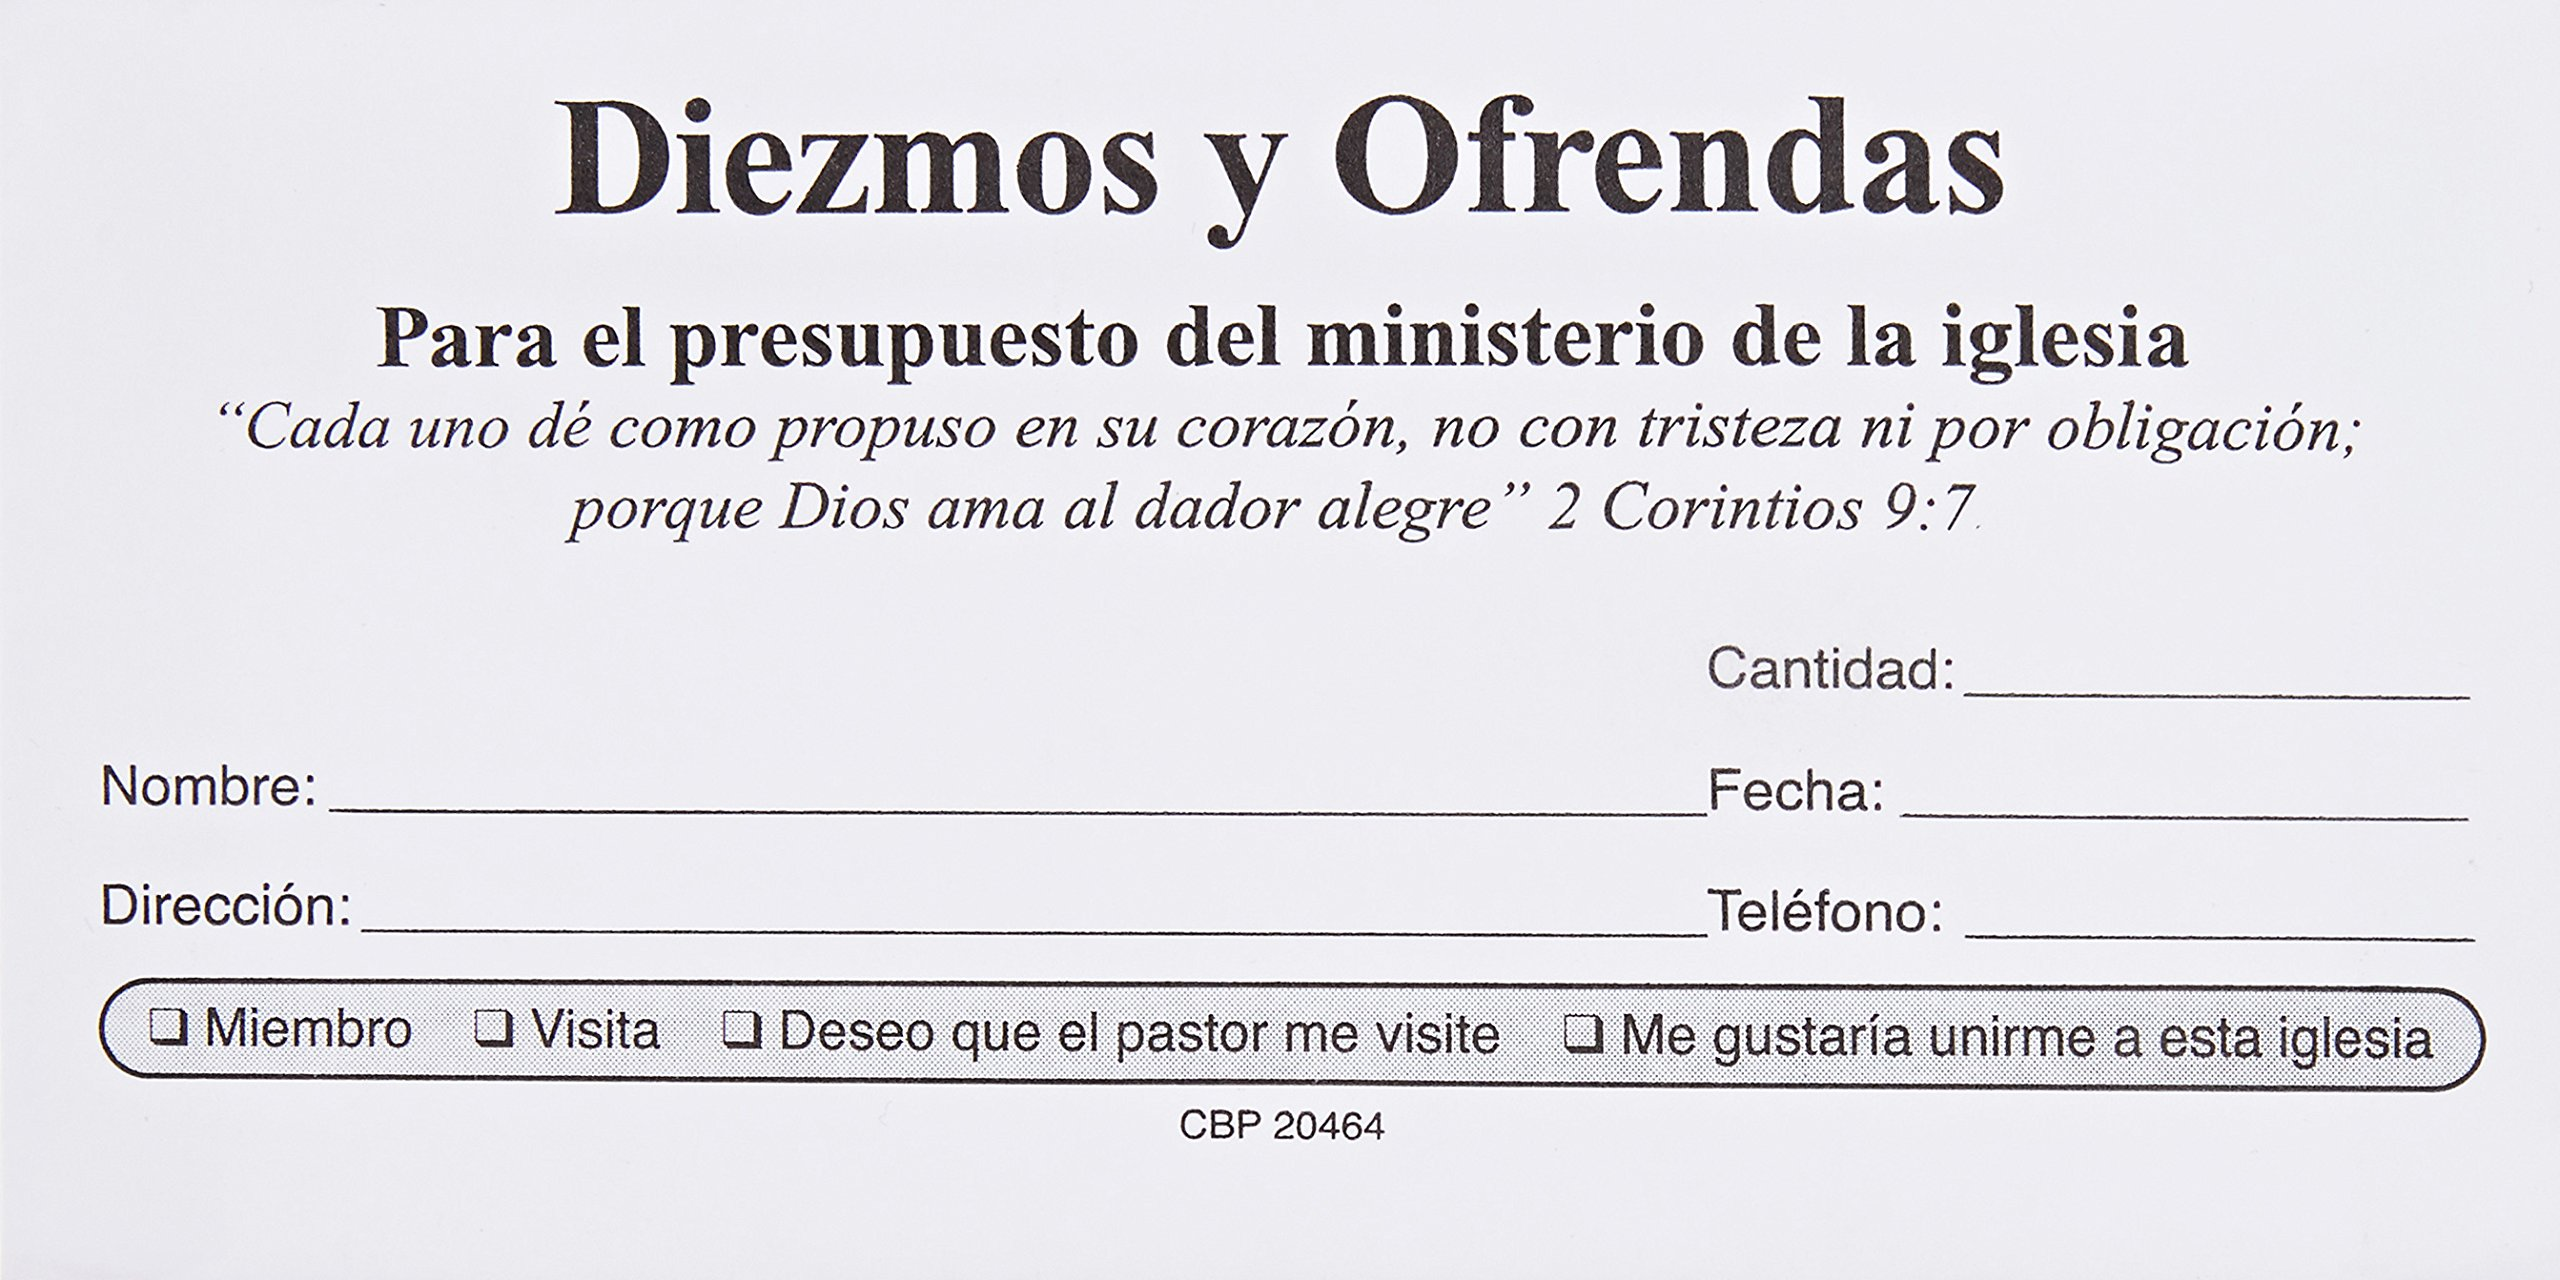 Sobres de Diezmos y Ofrendas (Spanish Edition): varios: 9780311204649: Amazon.com: Books